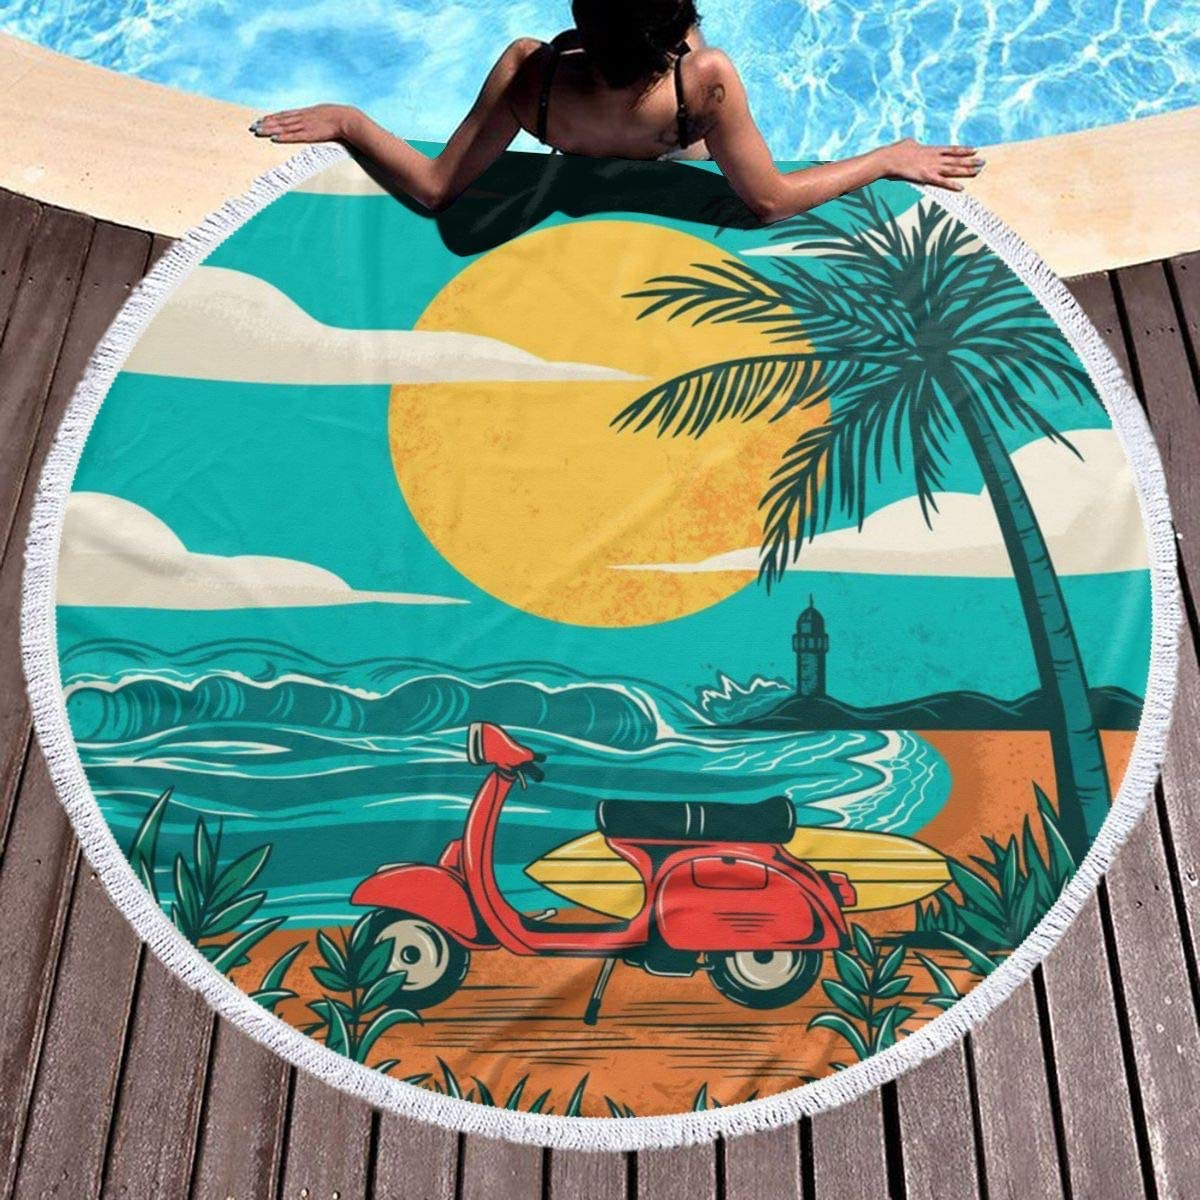 chenguang4422 Sunset Beach Palm Tree Printed Round Beach Towel Yoga Picnic Mat Round Tablecloth Ultra Soft Super Water Absorbent Terry Towel with Tassels